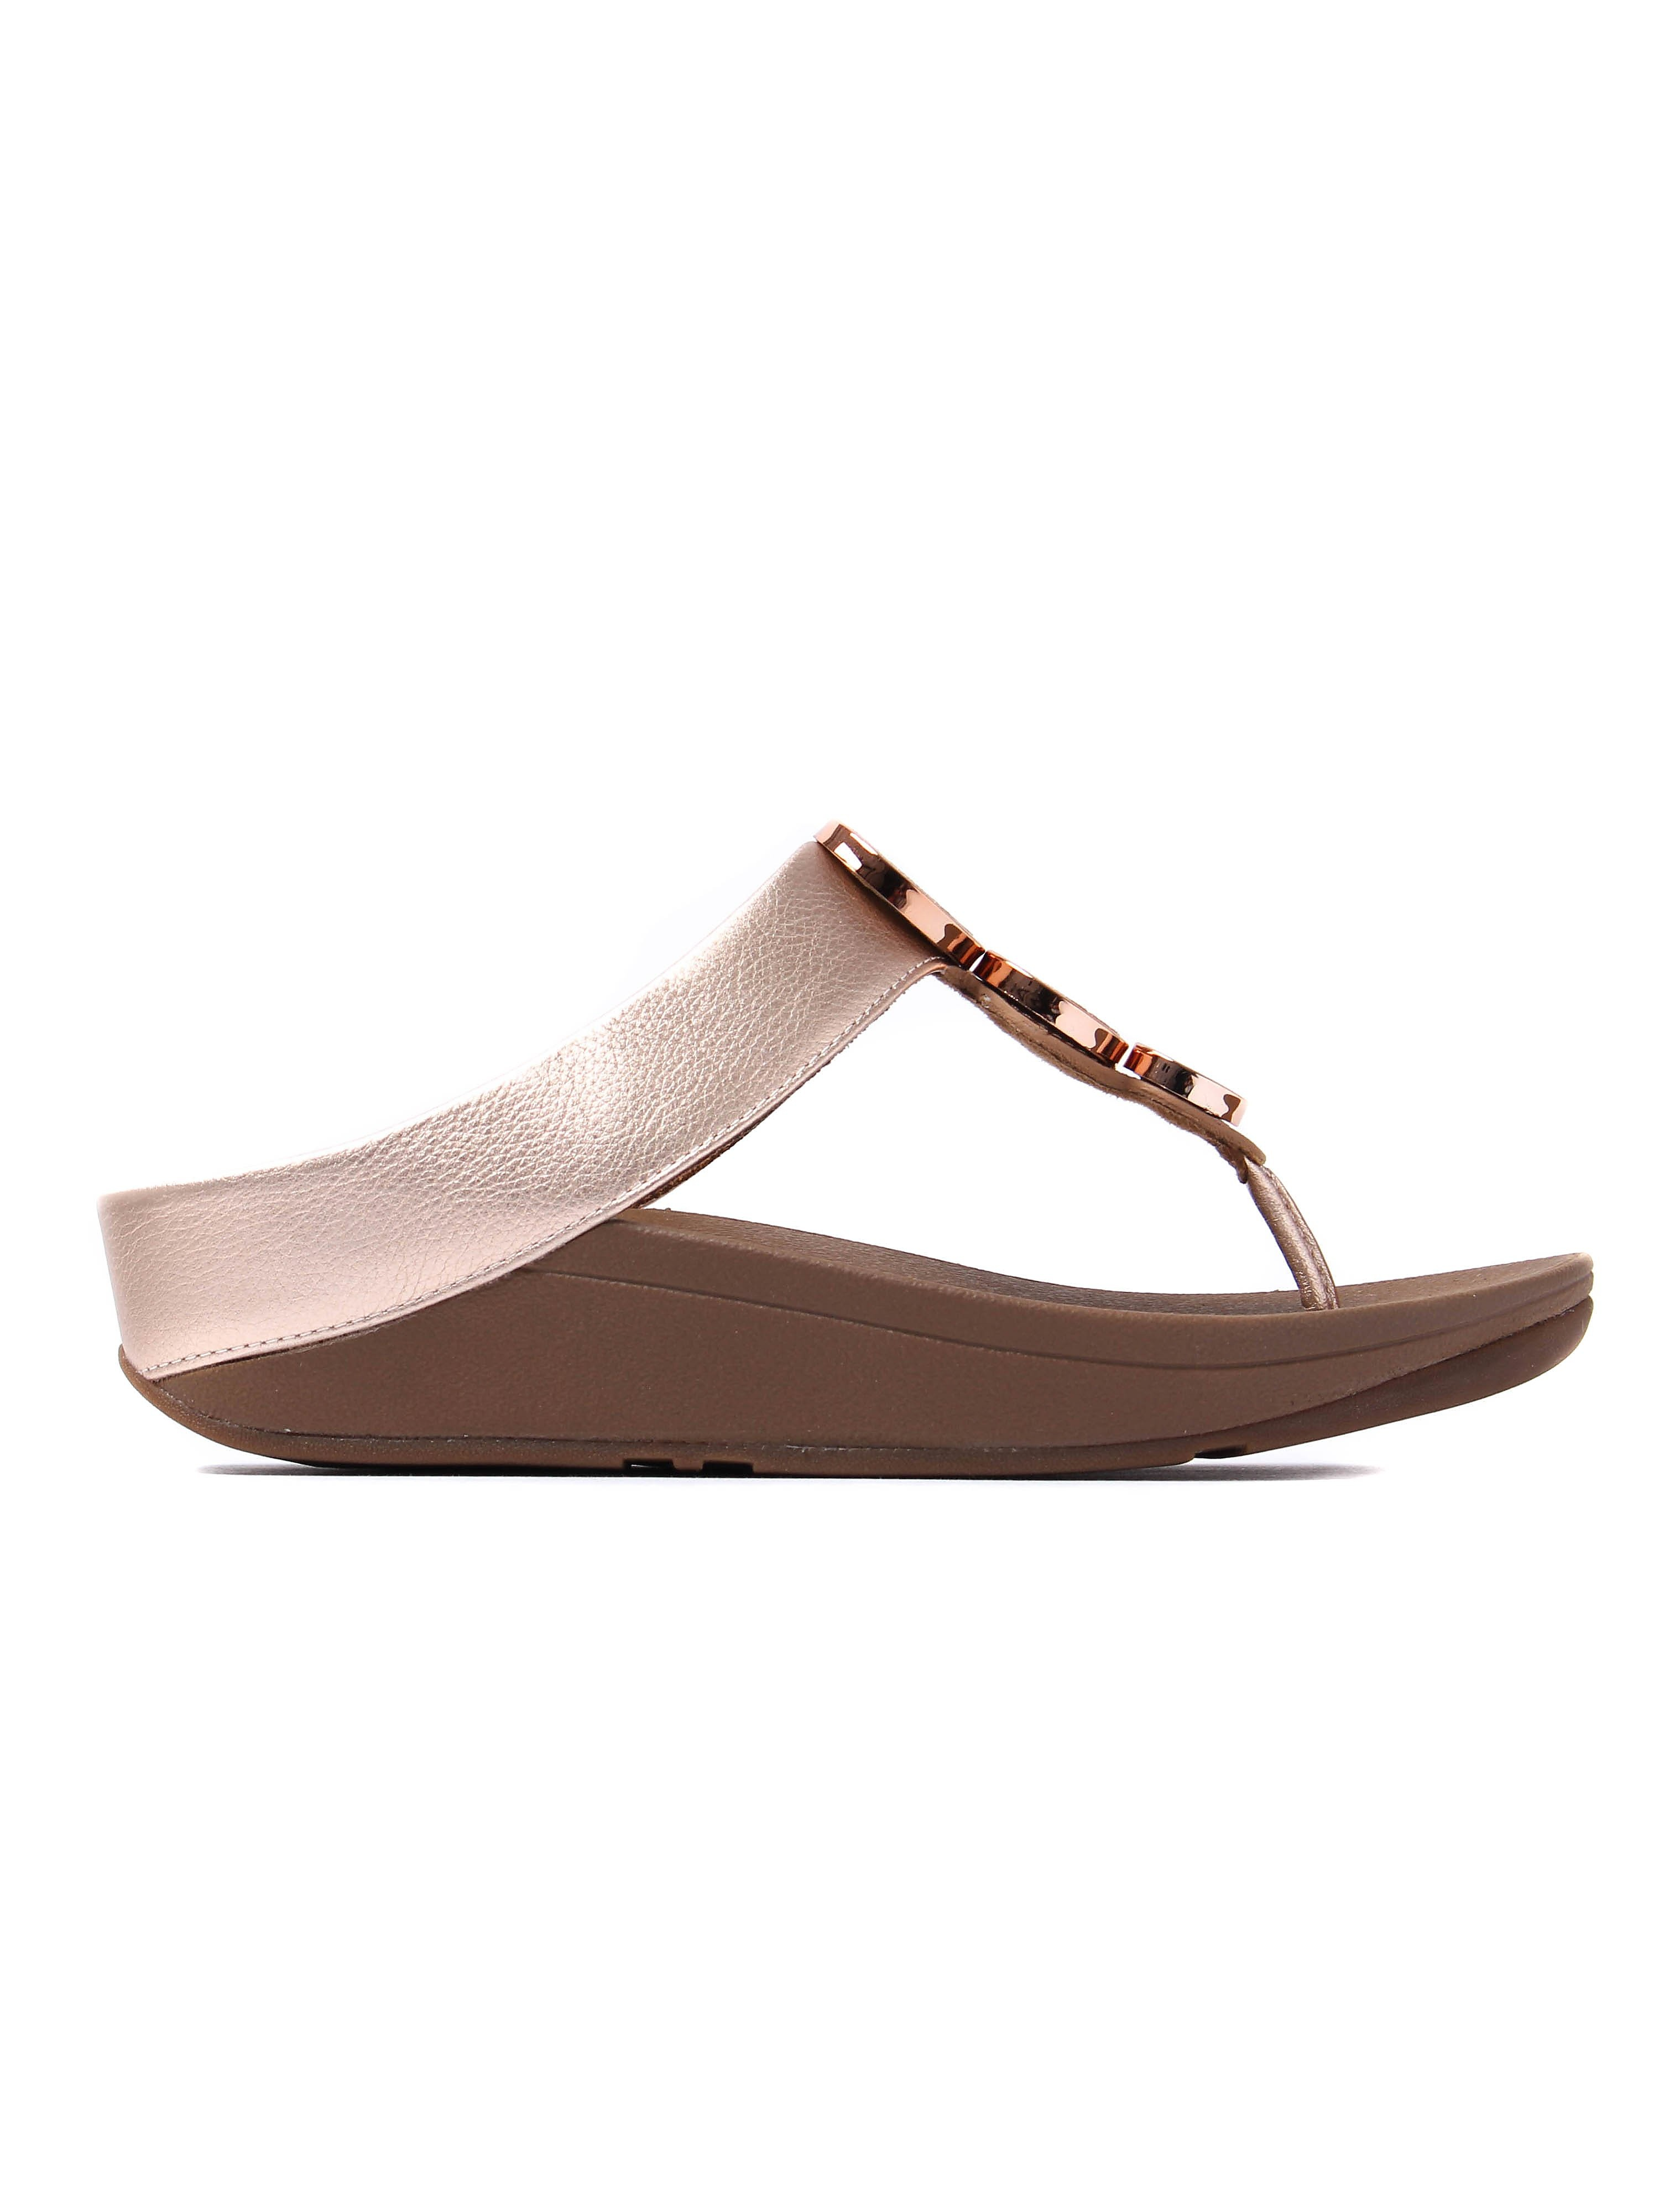 FitFlop Women's Halo Sandals - Rose Gold